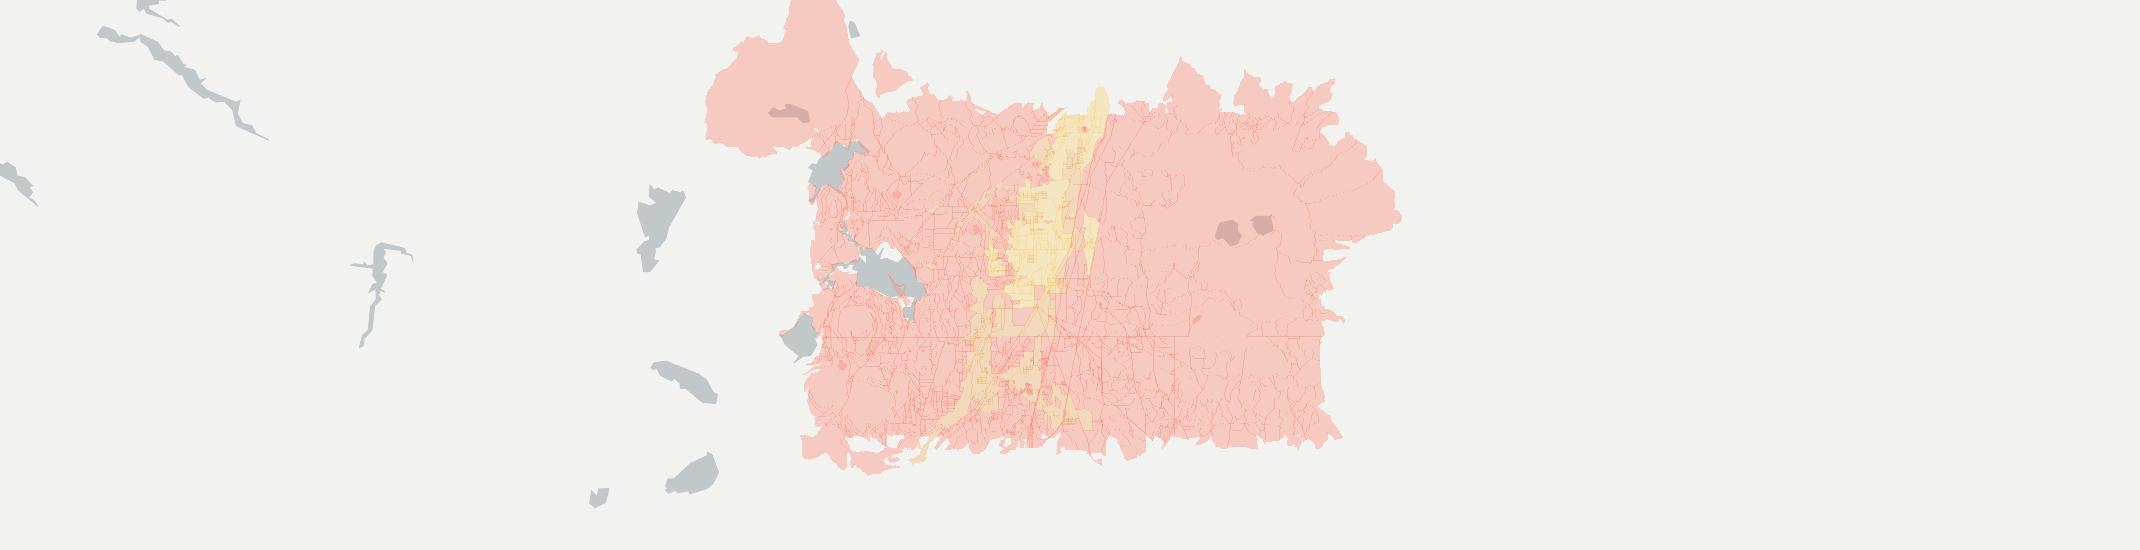 La Pine Internet Competition Map. Click for interactive map.